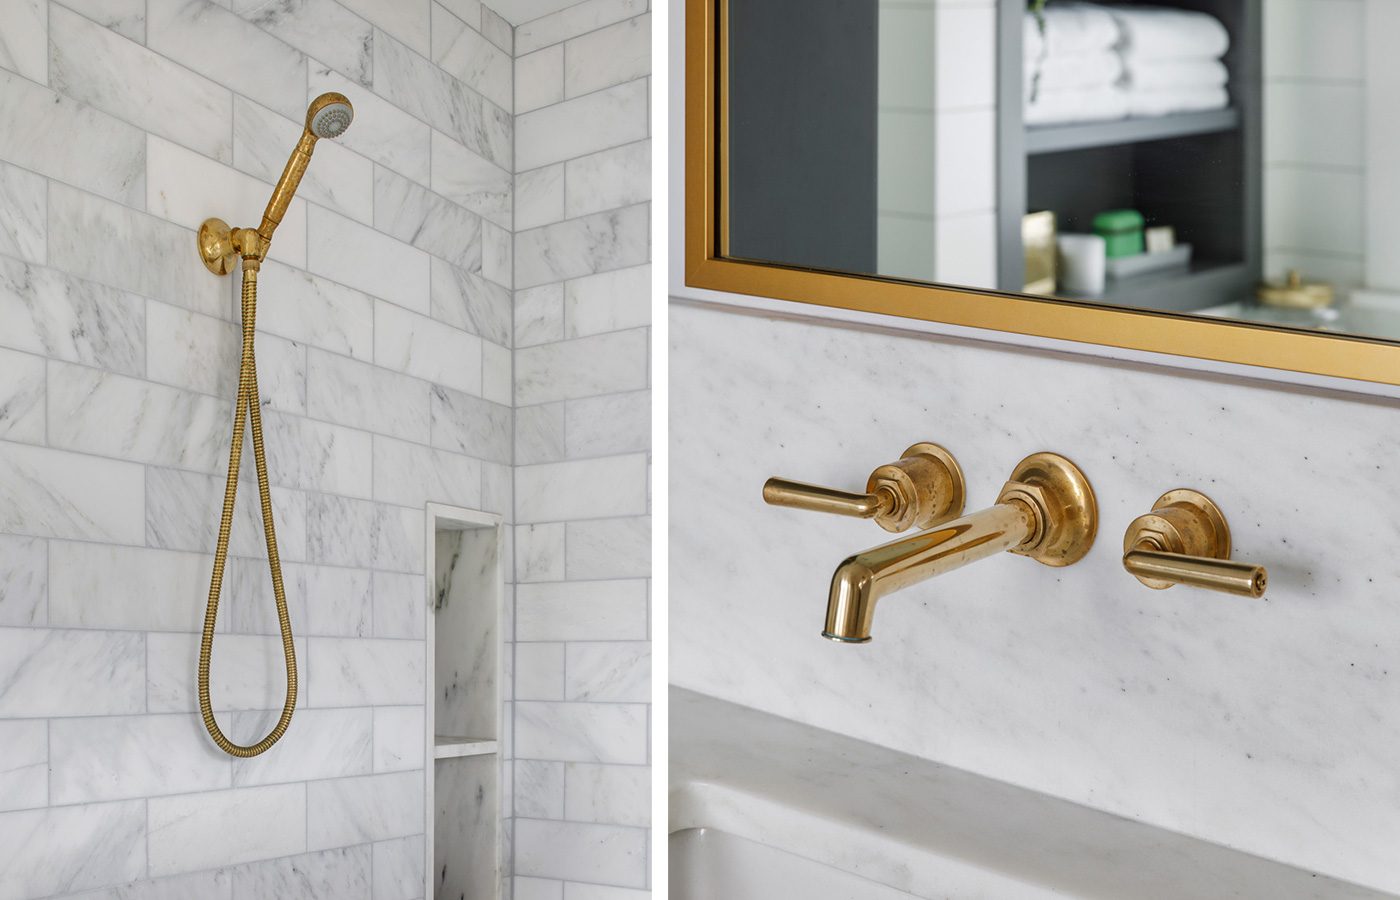 Brass bath fixtures in newly remodeled bath